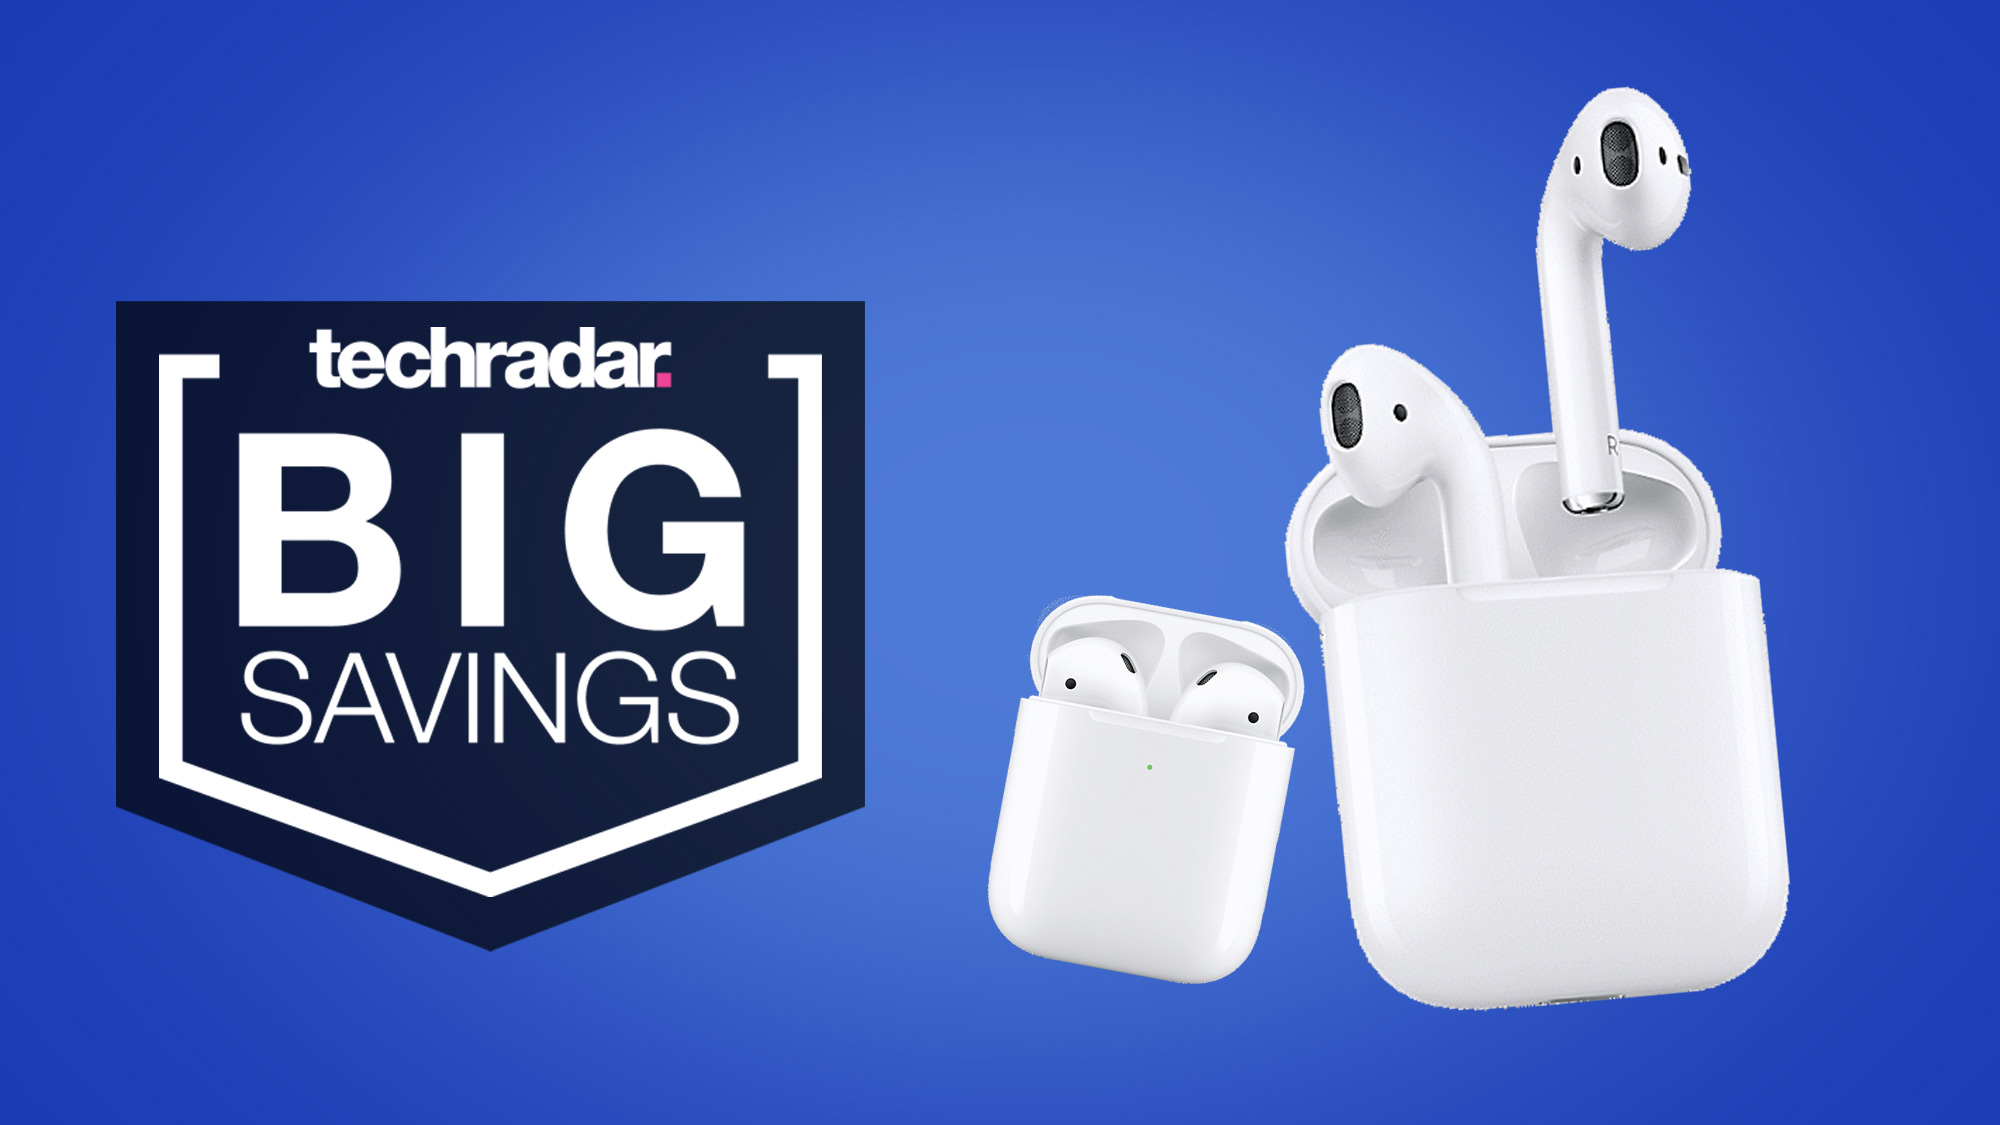 Arvo bargain: snag AU$40 off a pair of Apple AirPods with wireless charging